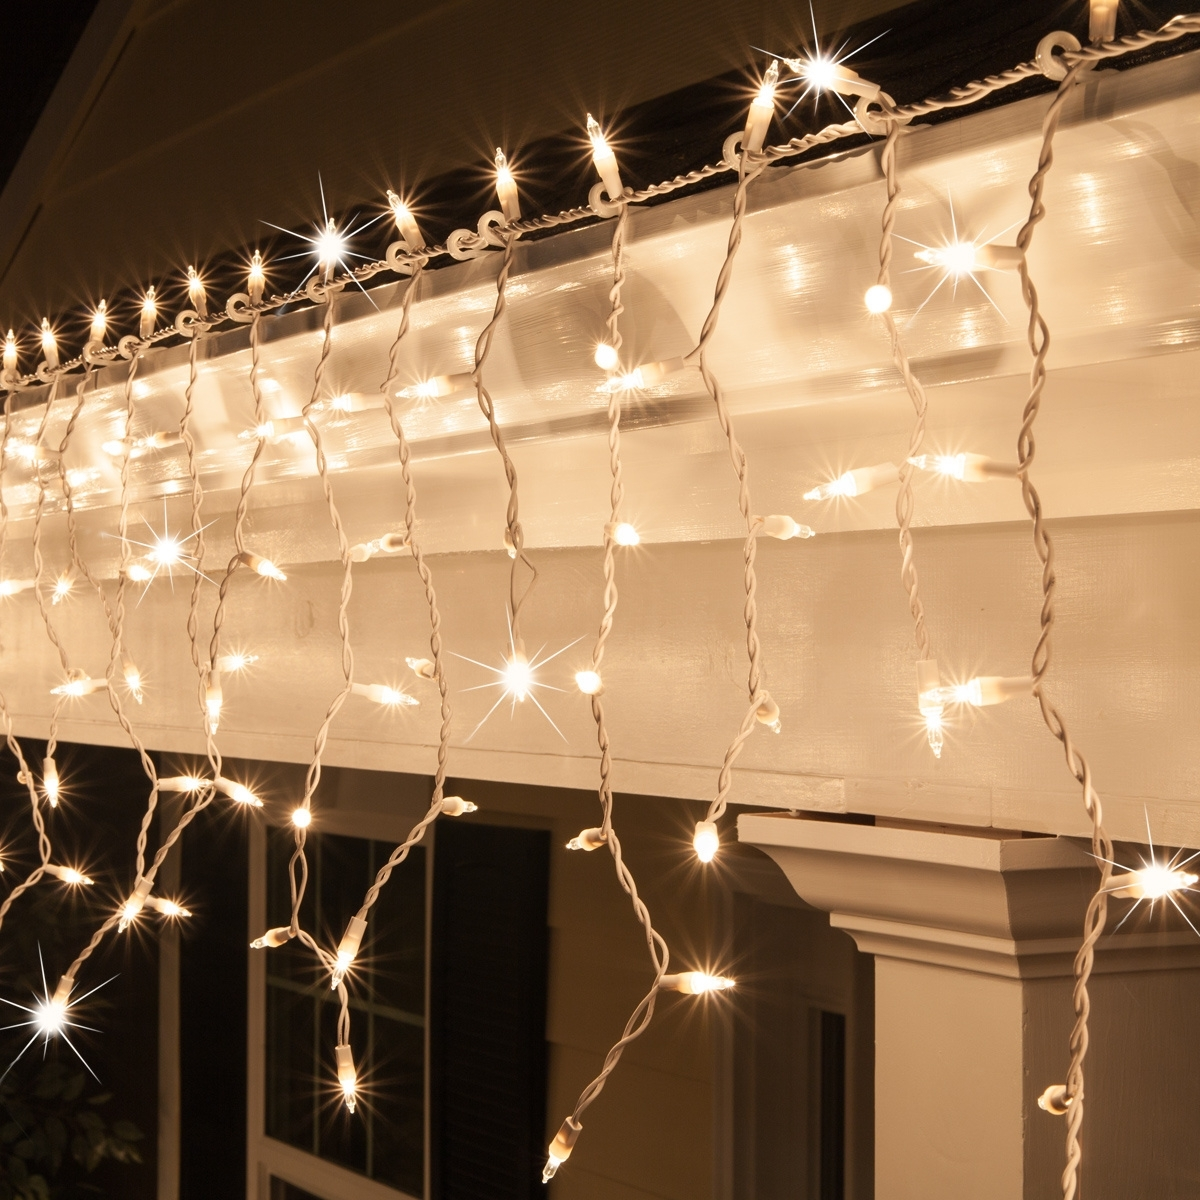 Outdoor Hanging Icicle Lights With Regard To Well Known Christmas Icicle Light – 150 Clear Twinkle Icicle Lights – White Wire (View 16 of 20)